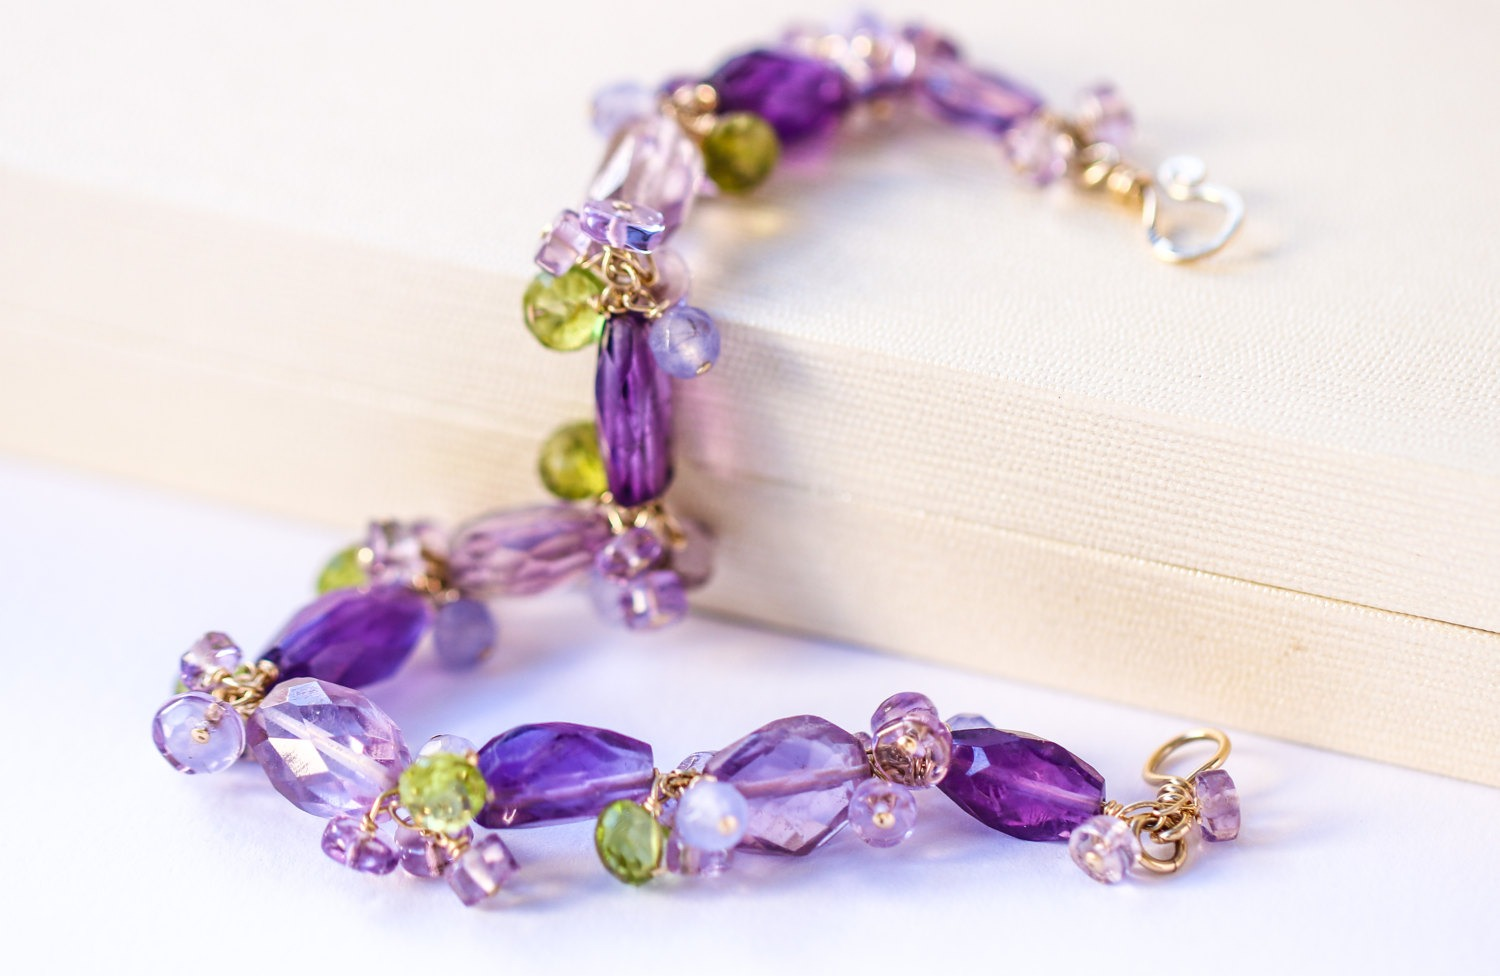 bracelet bangles tree in fashion strand gift of item purple for from brand with jewelry crystal beads life women designer natural stone bracelets